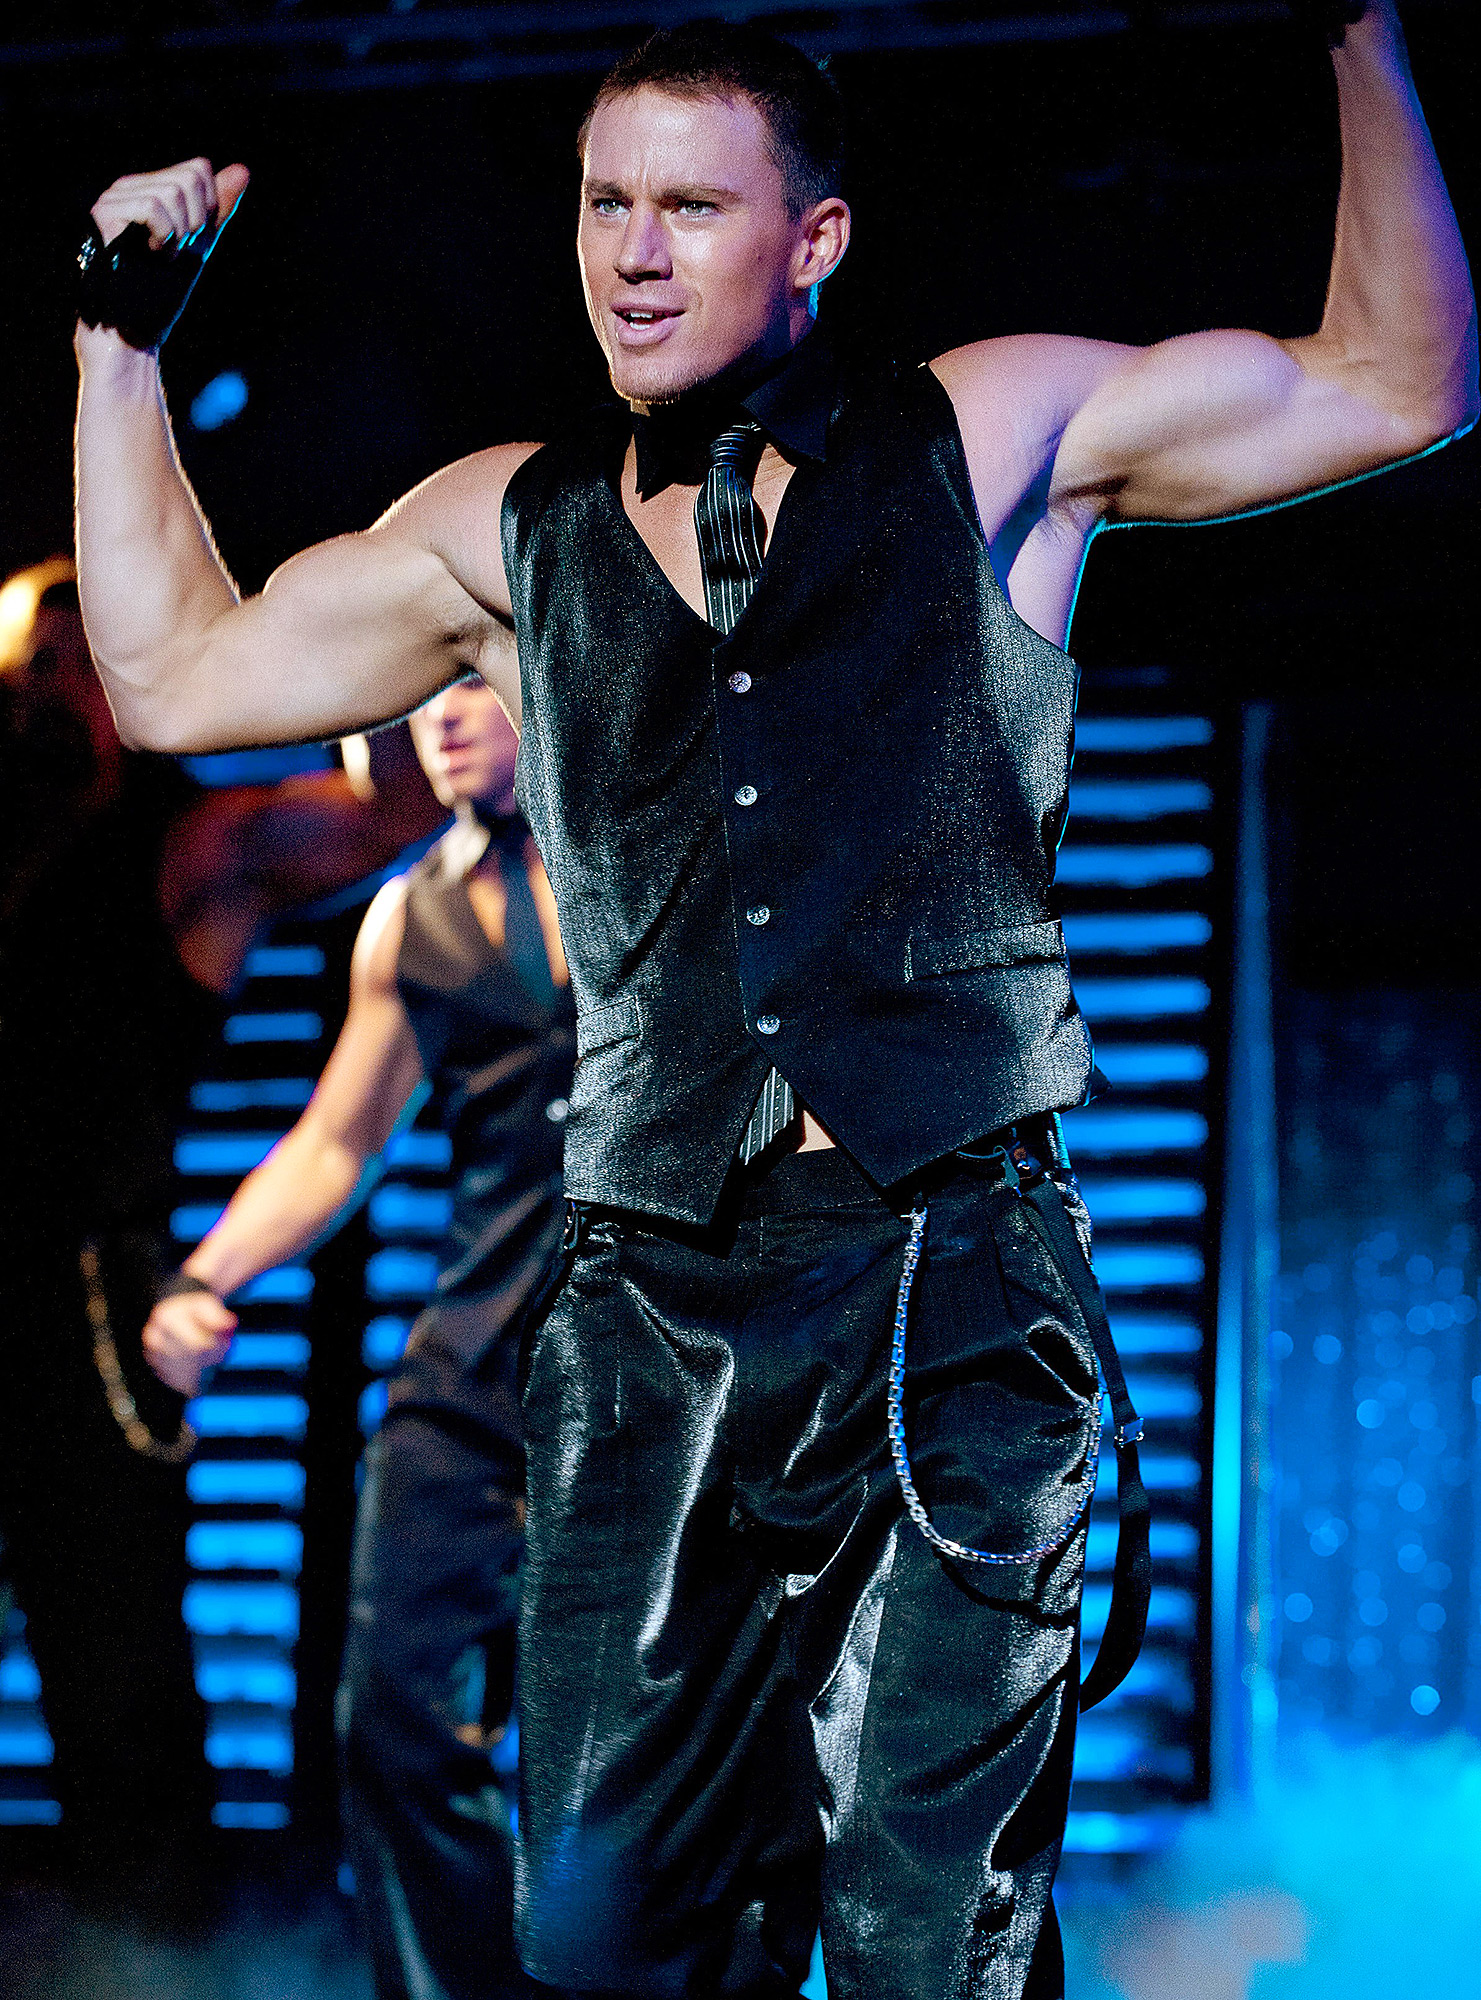 MAGIC MIKE, Channing Tatum, 2012. ph: Claudette Barius/©Warner Bros./Courtesy Everett Collection